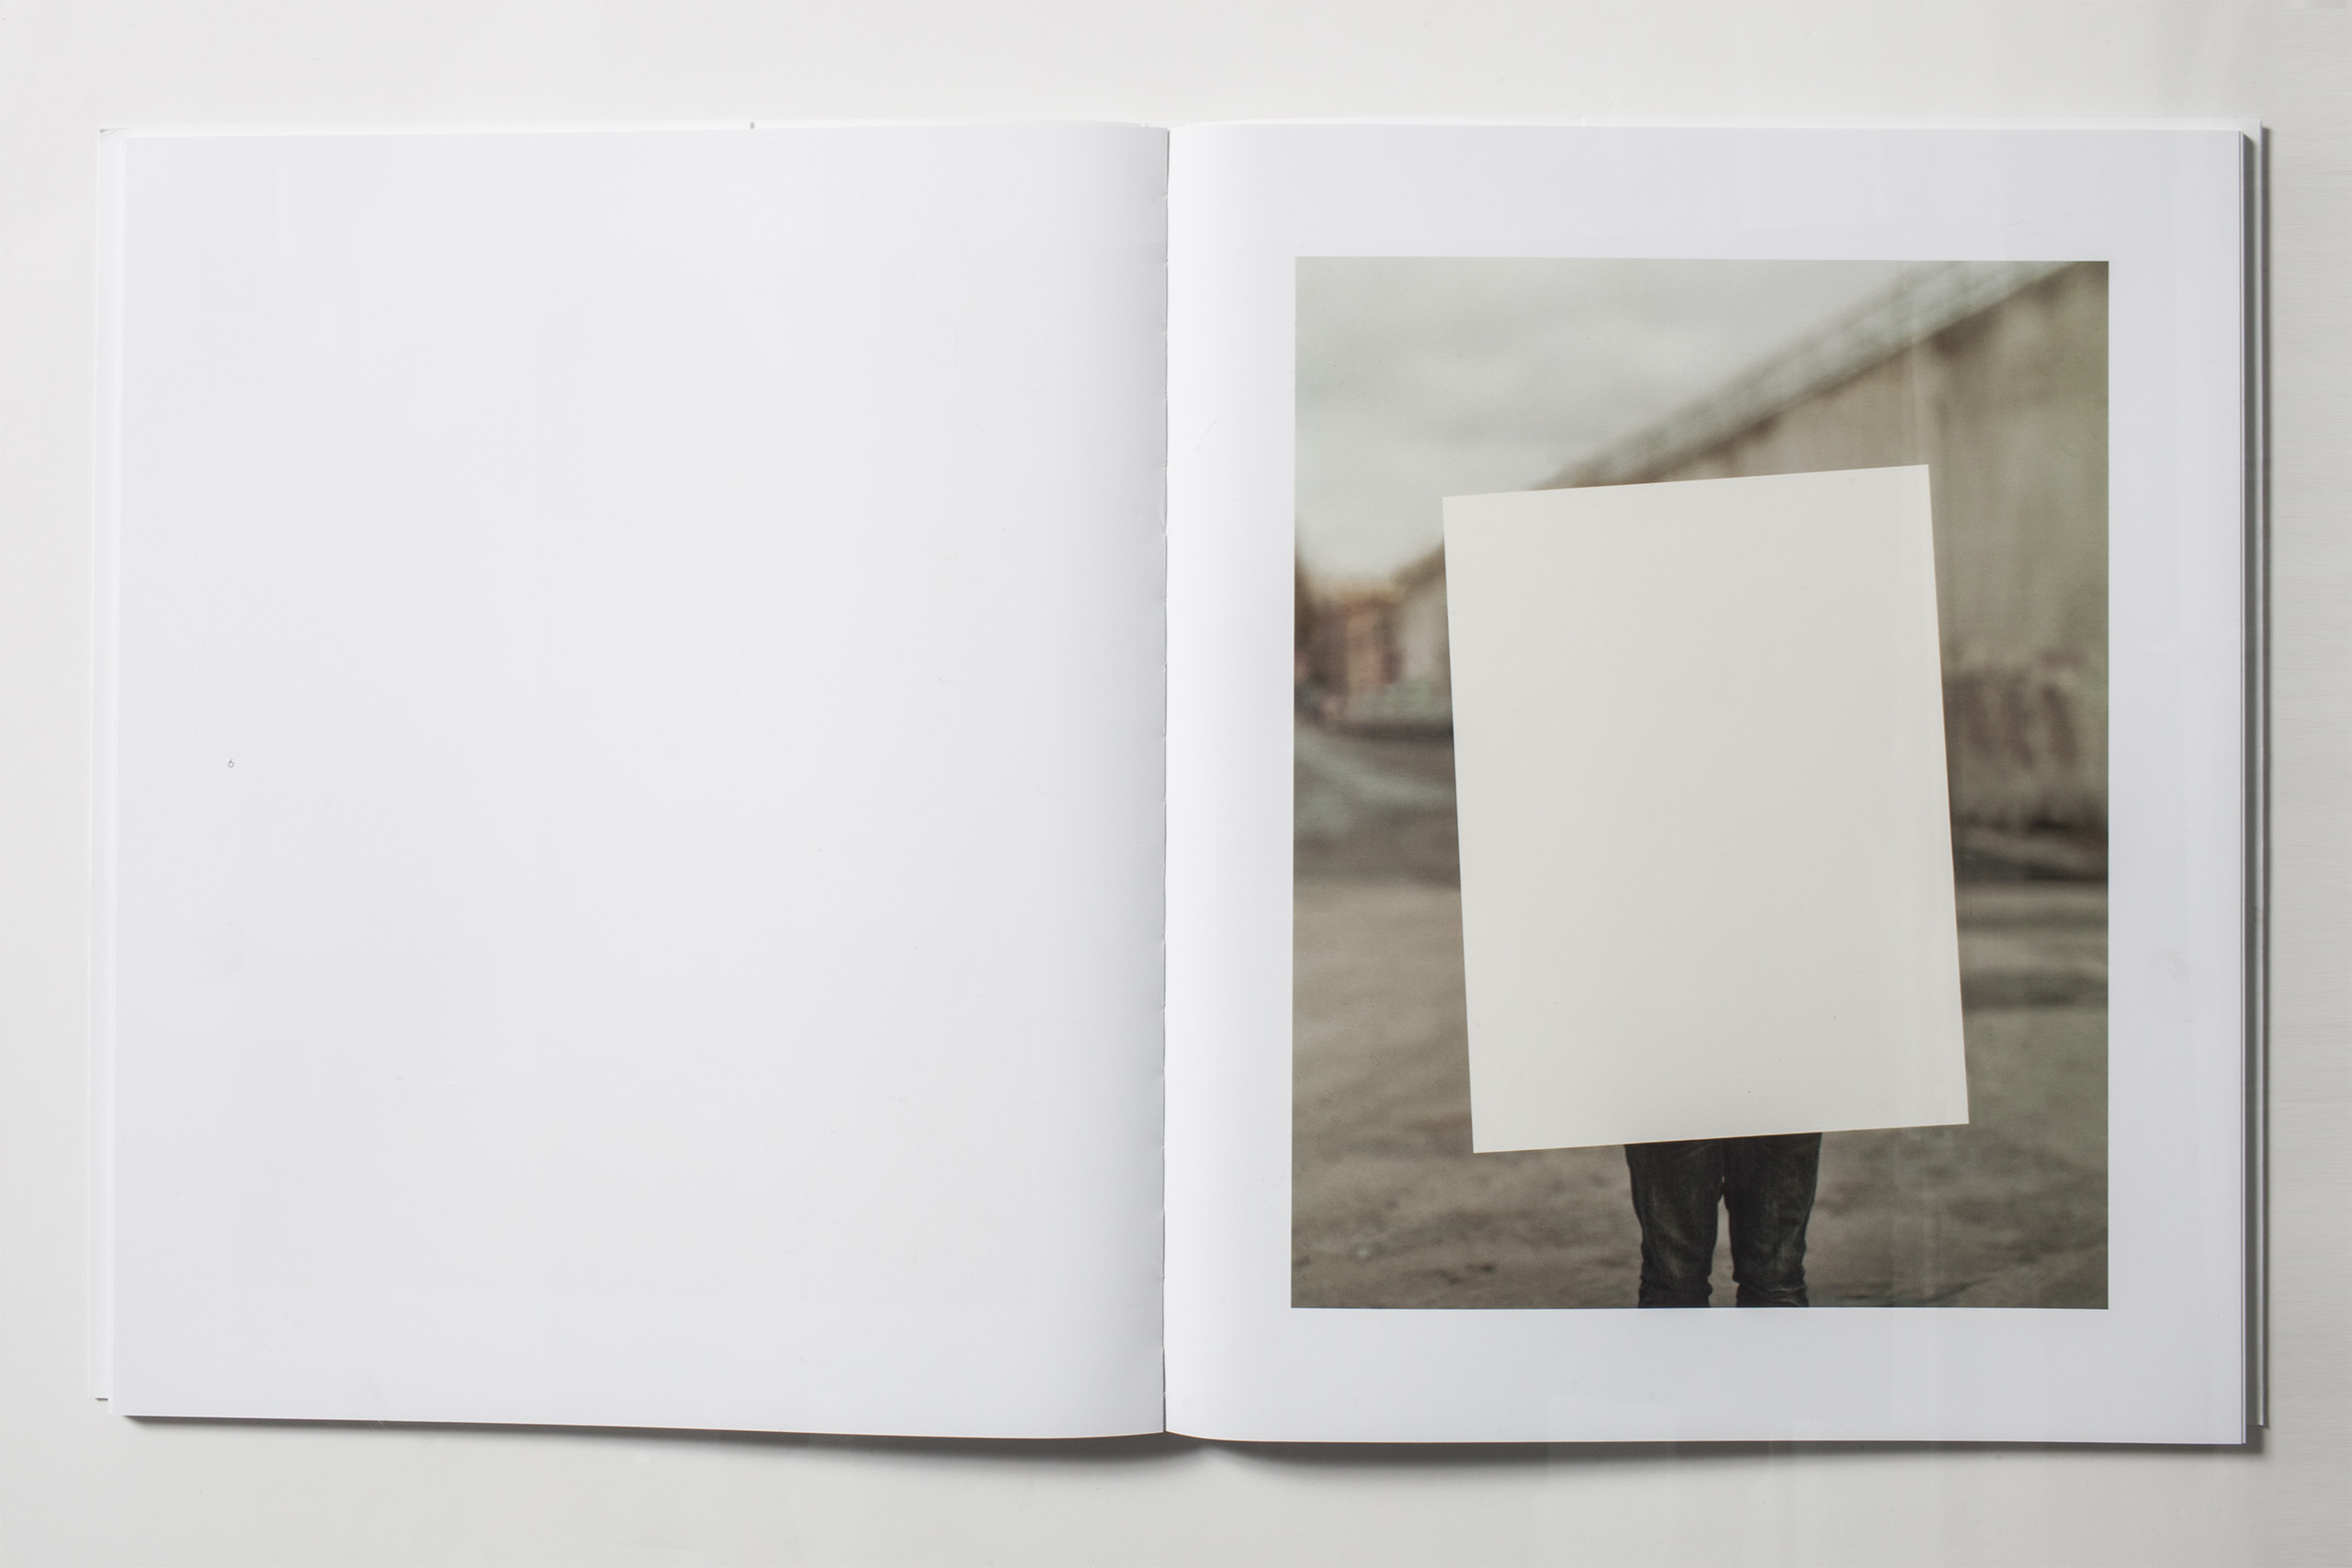 Selected by author and photography critic Philip Gefter:  They are photographs of a conceptual nature, all referring to a kind of Minimalist aesthetic, a frame within a frame, addressing the photographic plane on a truly perceptual level.